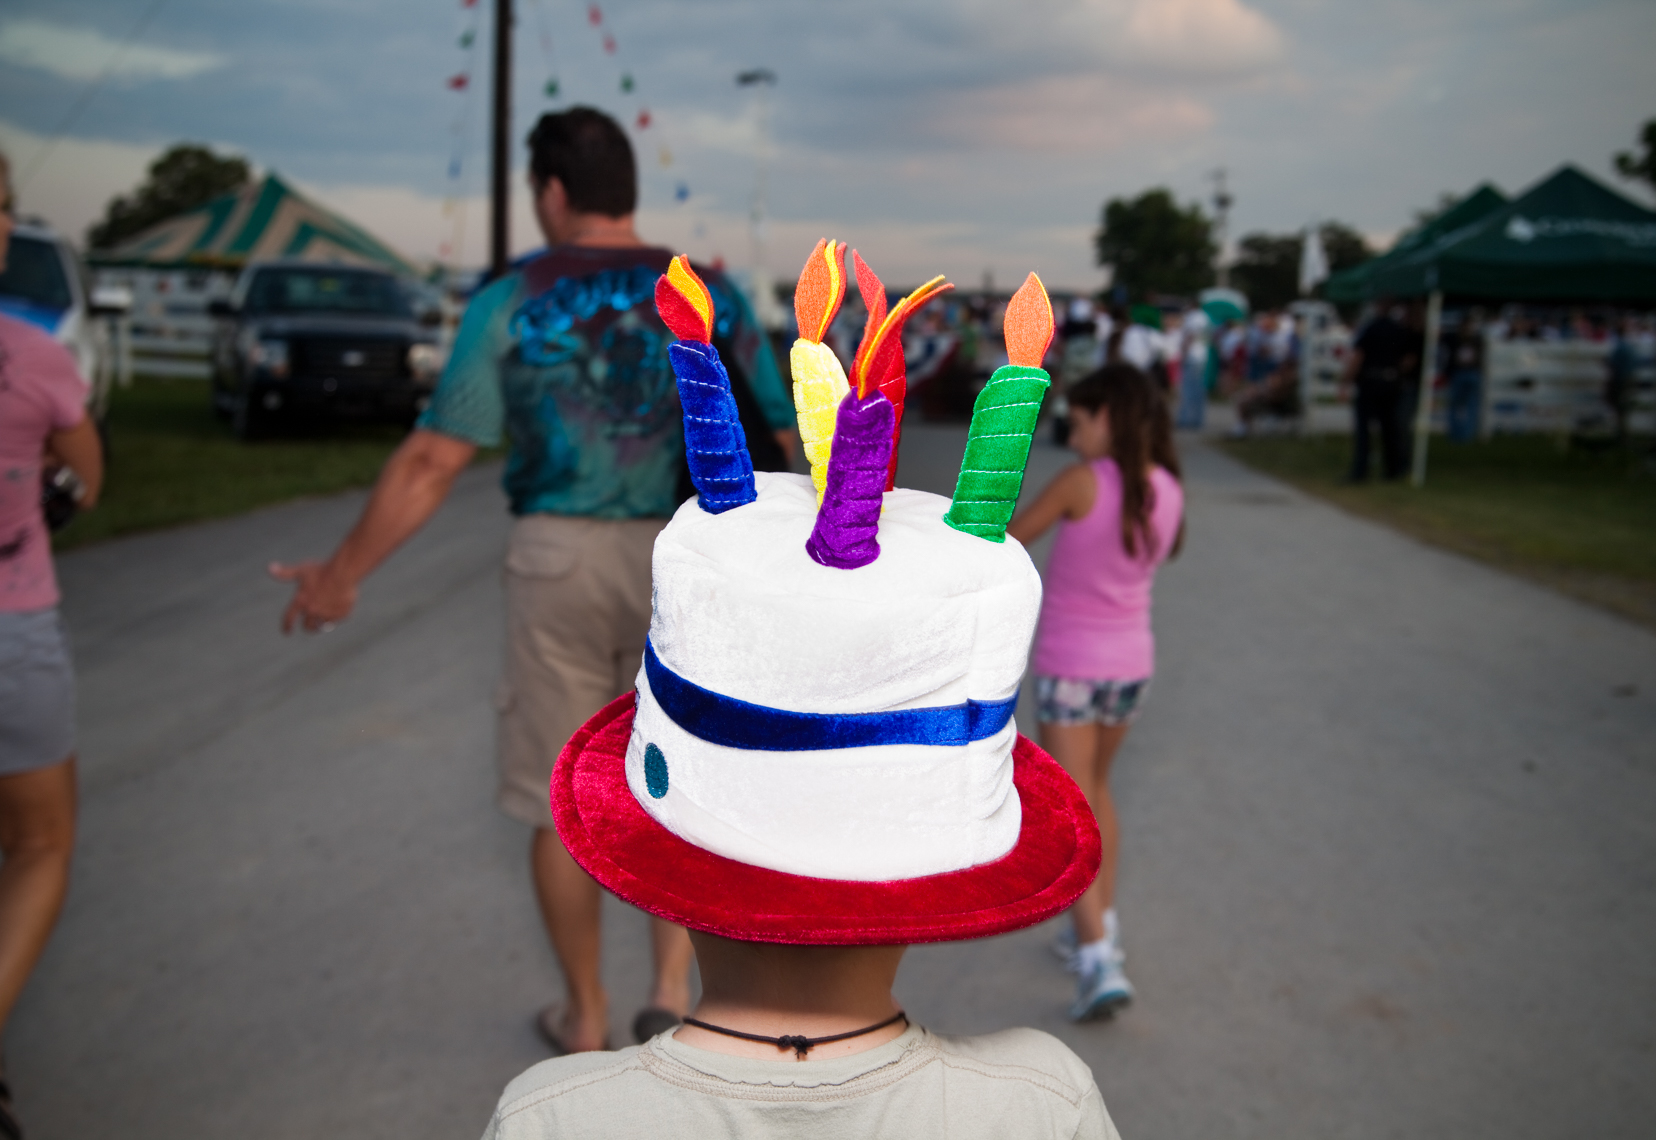 Boy with cake and candles hat, costume, Wilson County Fair, Lebanon, Tennessee, carnival, amusement park, rural south